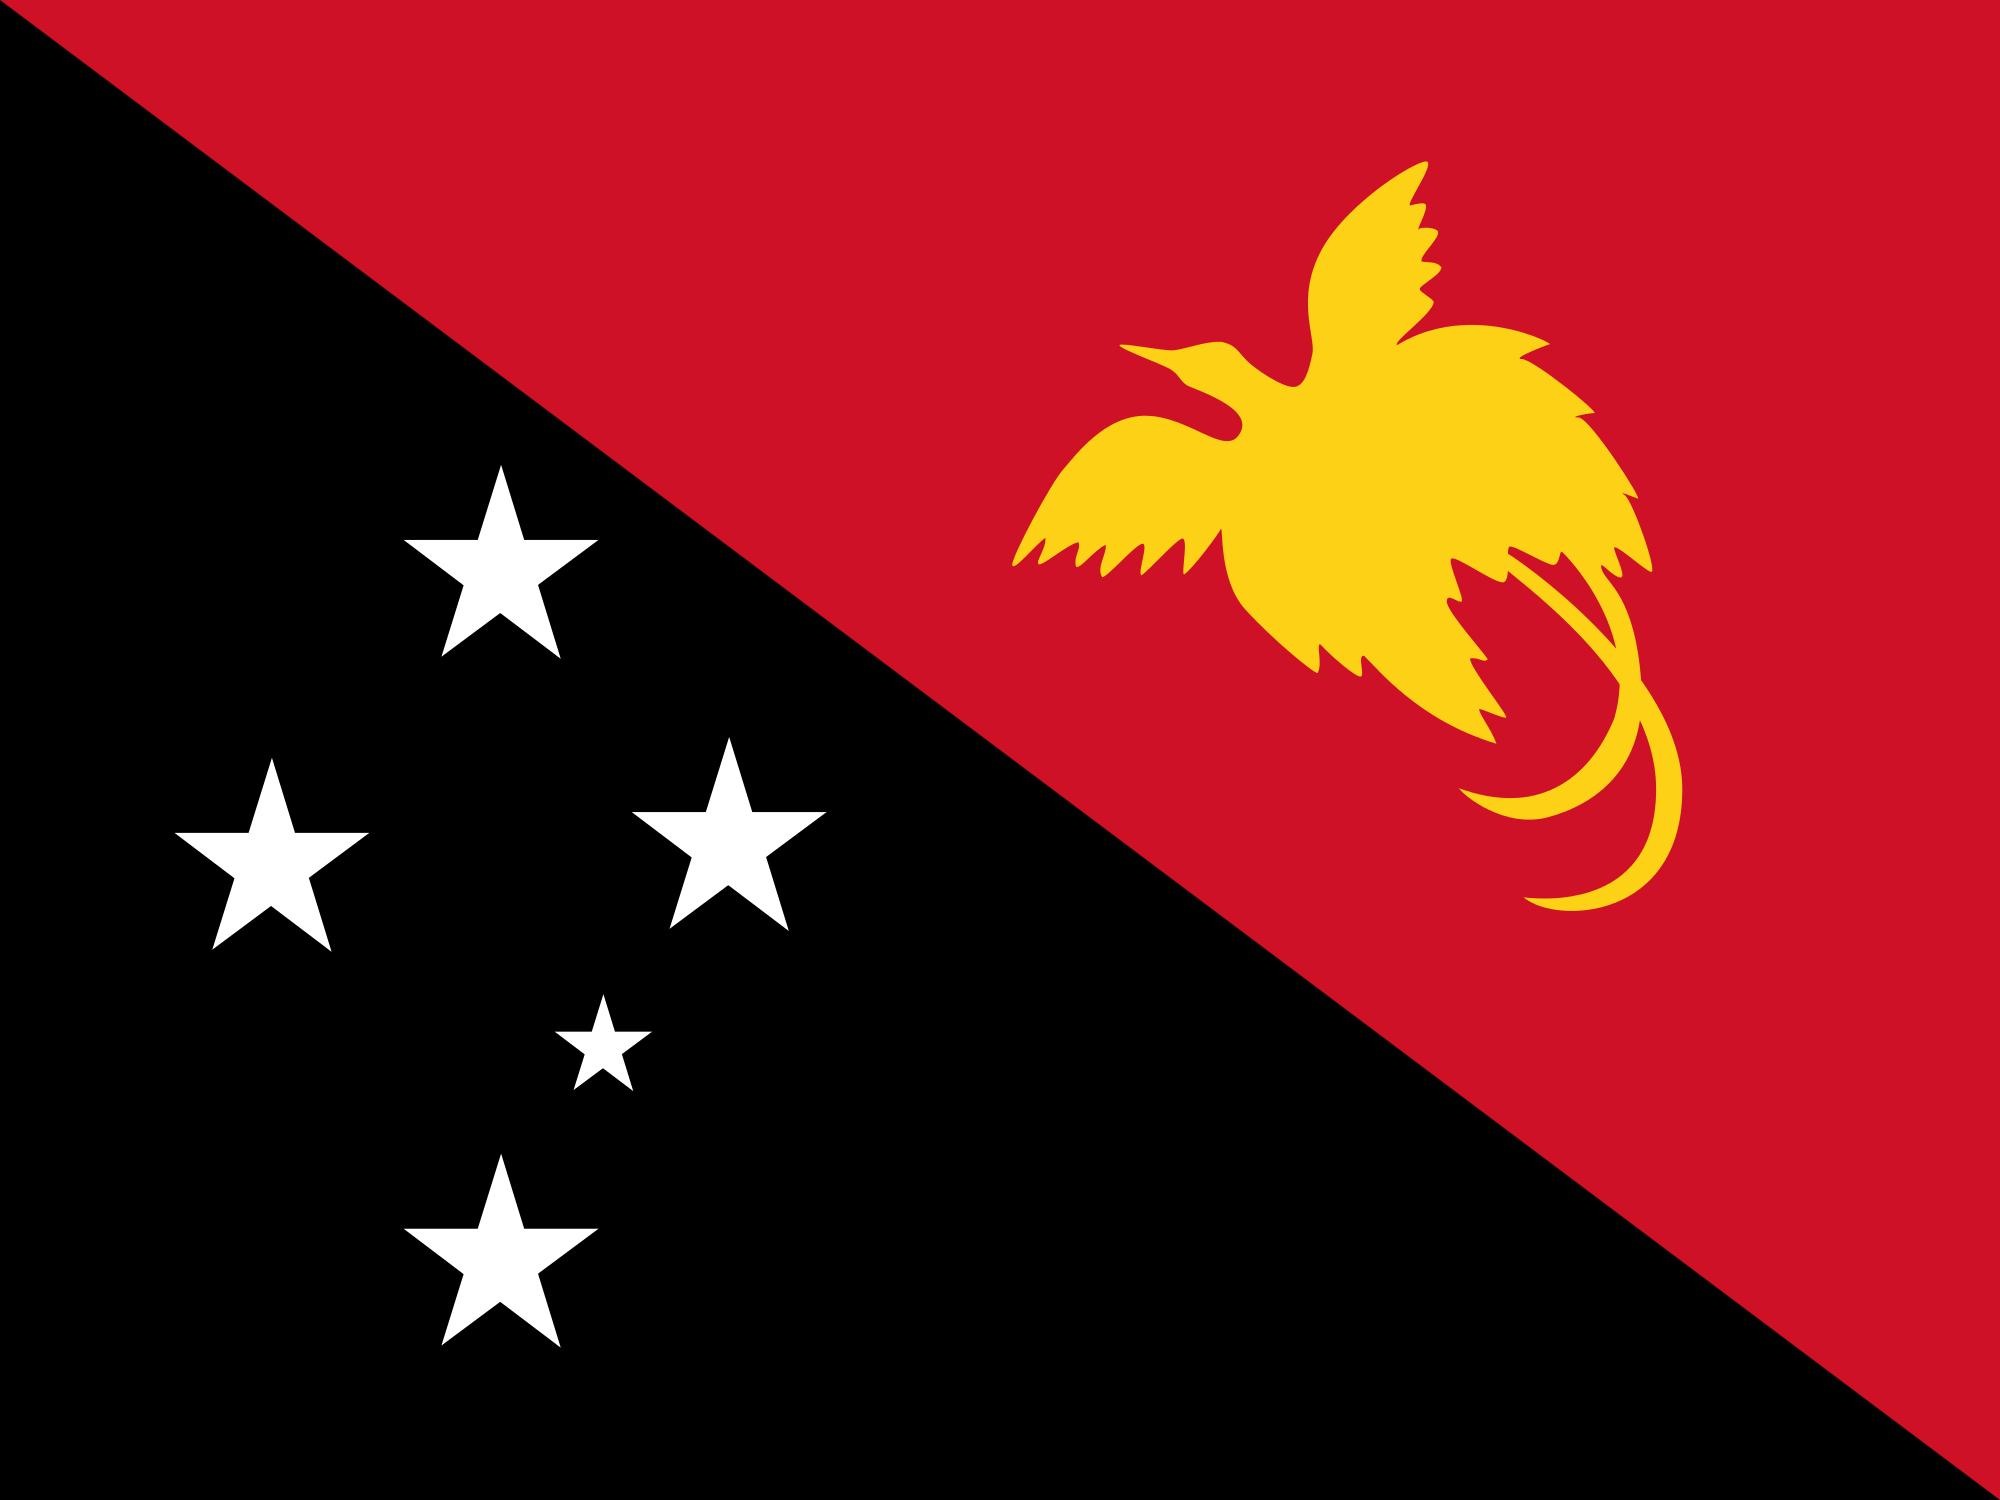 About Papua New Guinea.